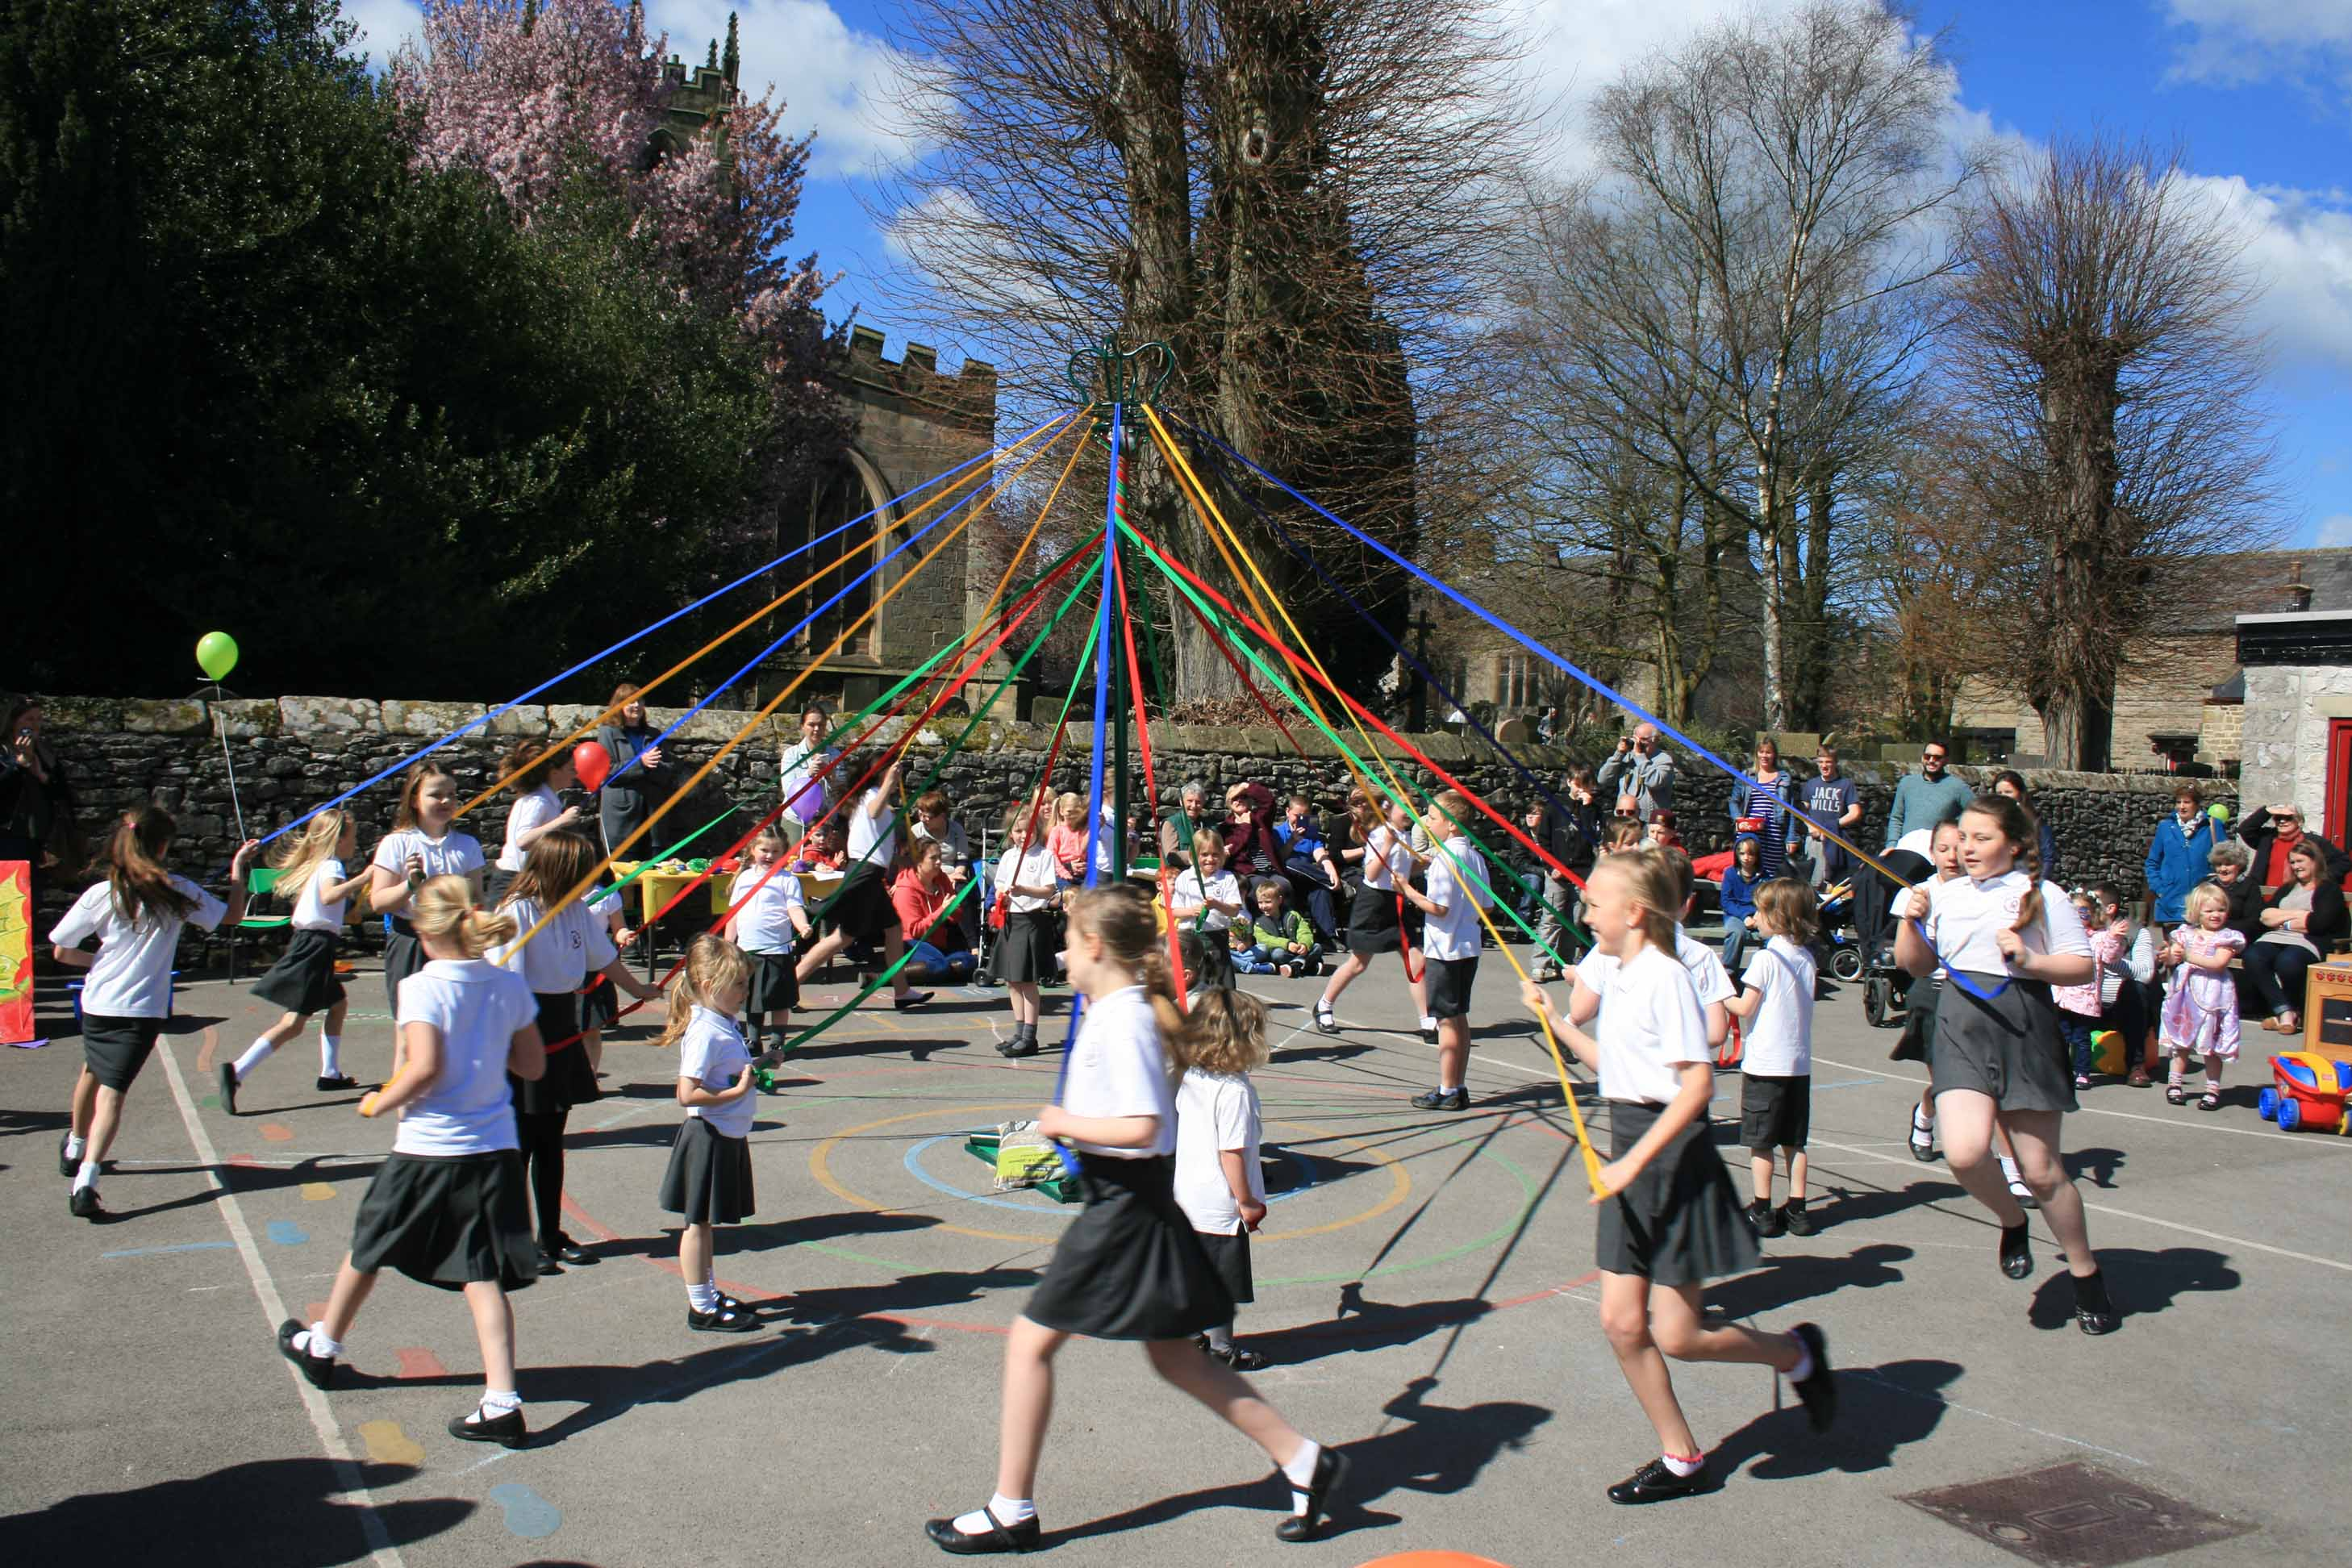 School Fair maypole dancing Apr 16 a